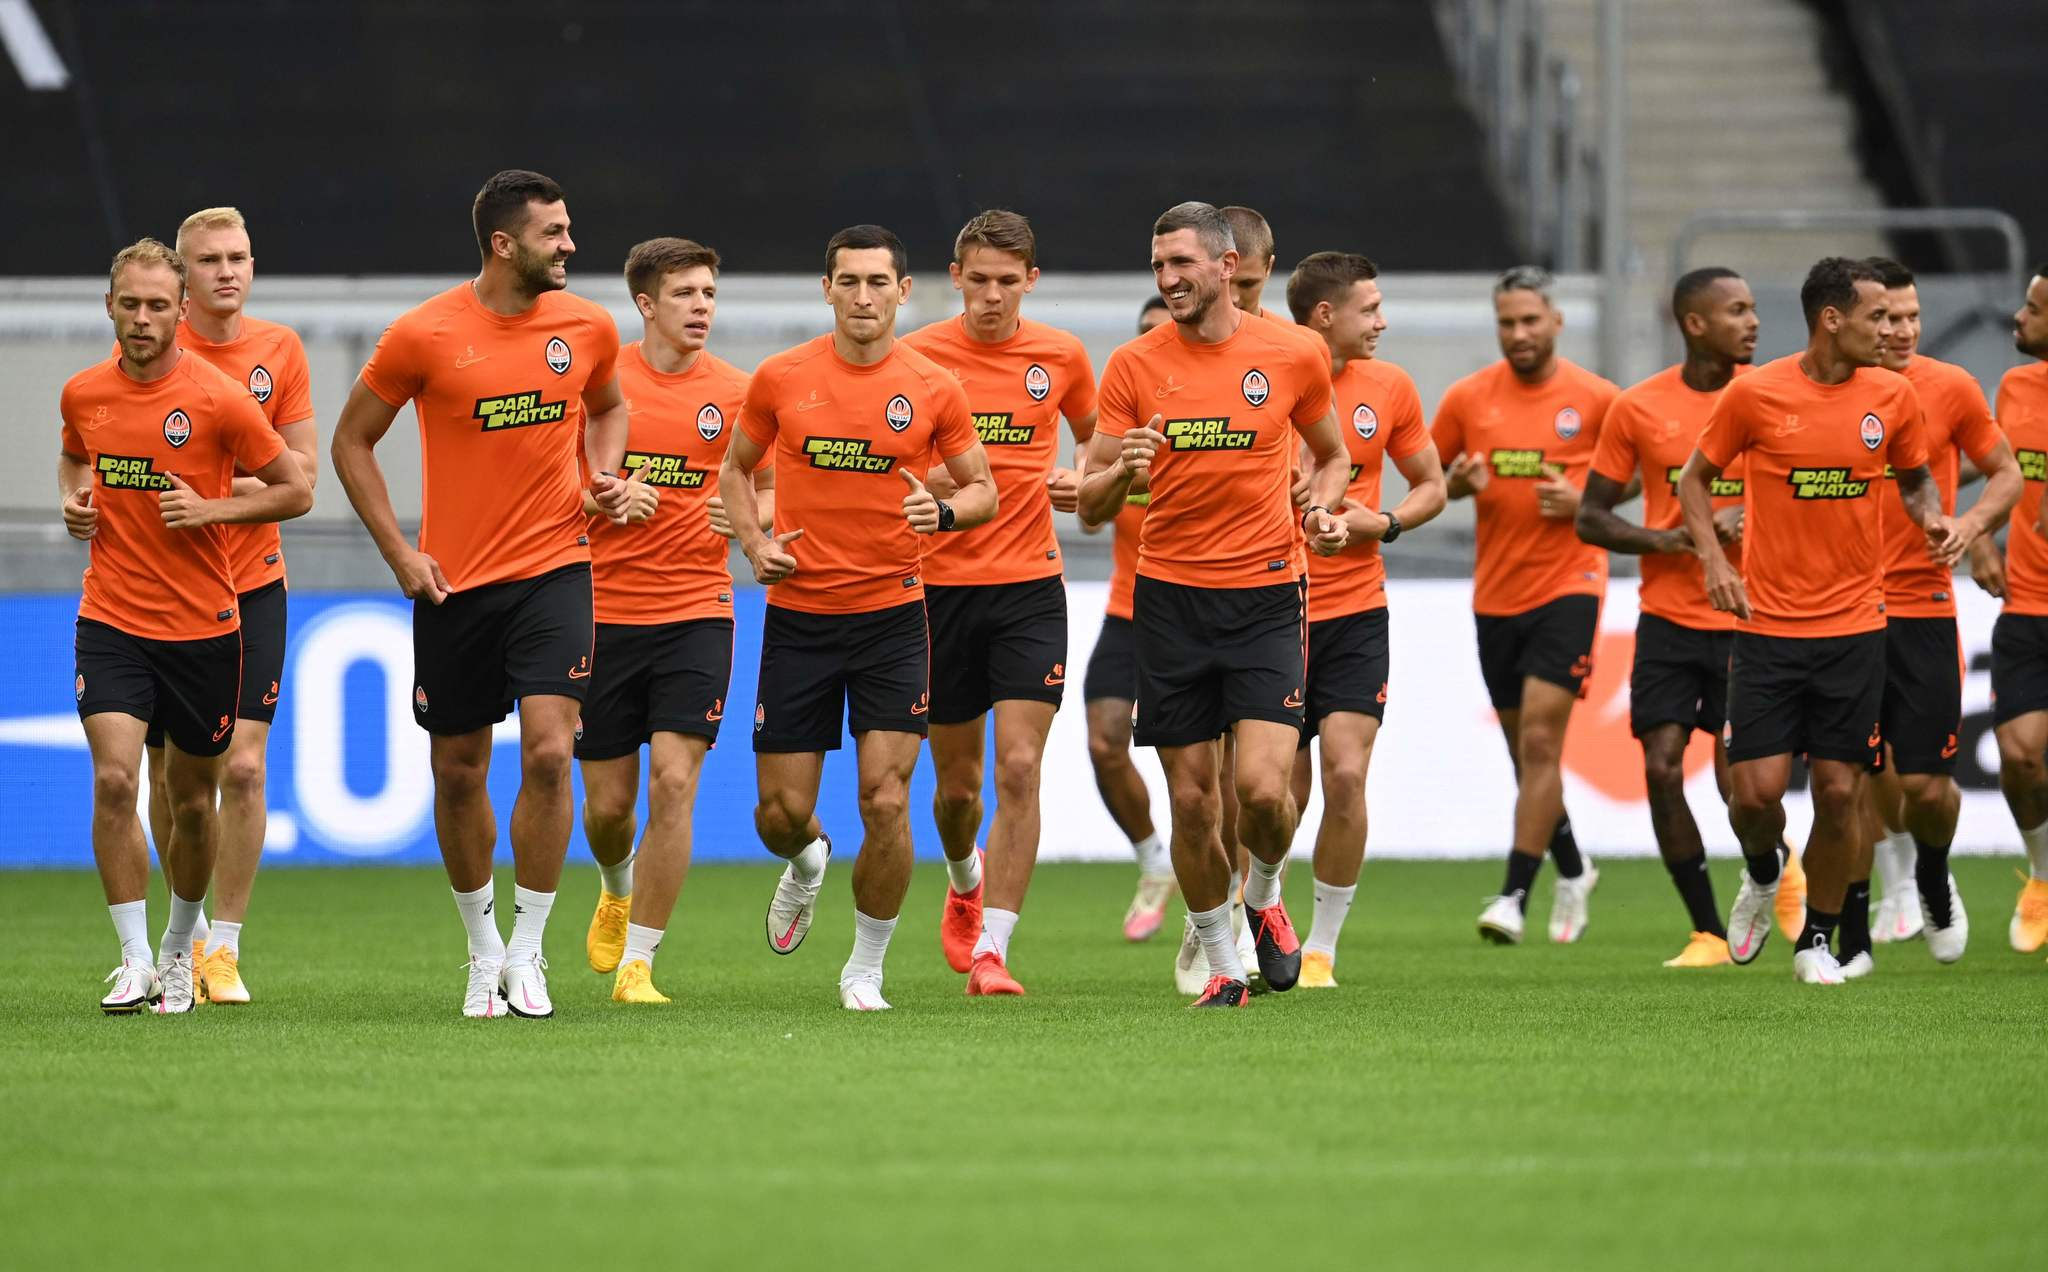 lt;HIT gt;Shakhtar lt;/HIT gt; Donetsks players take part in a training session on the eve of the UEFA Europa League semi-final football match Inter Milan v lt;HIT gt;Shakhtar lt;/HIT gt; Donetsk on August 16, 2020 in Duesseldorf, western Germany. (Photo by Sascha Steinbach / POOL / AFP)